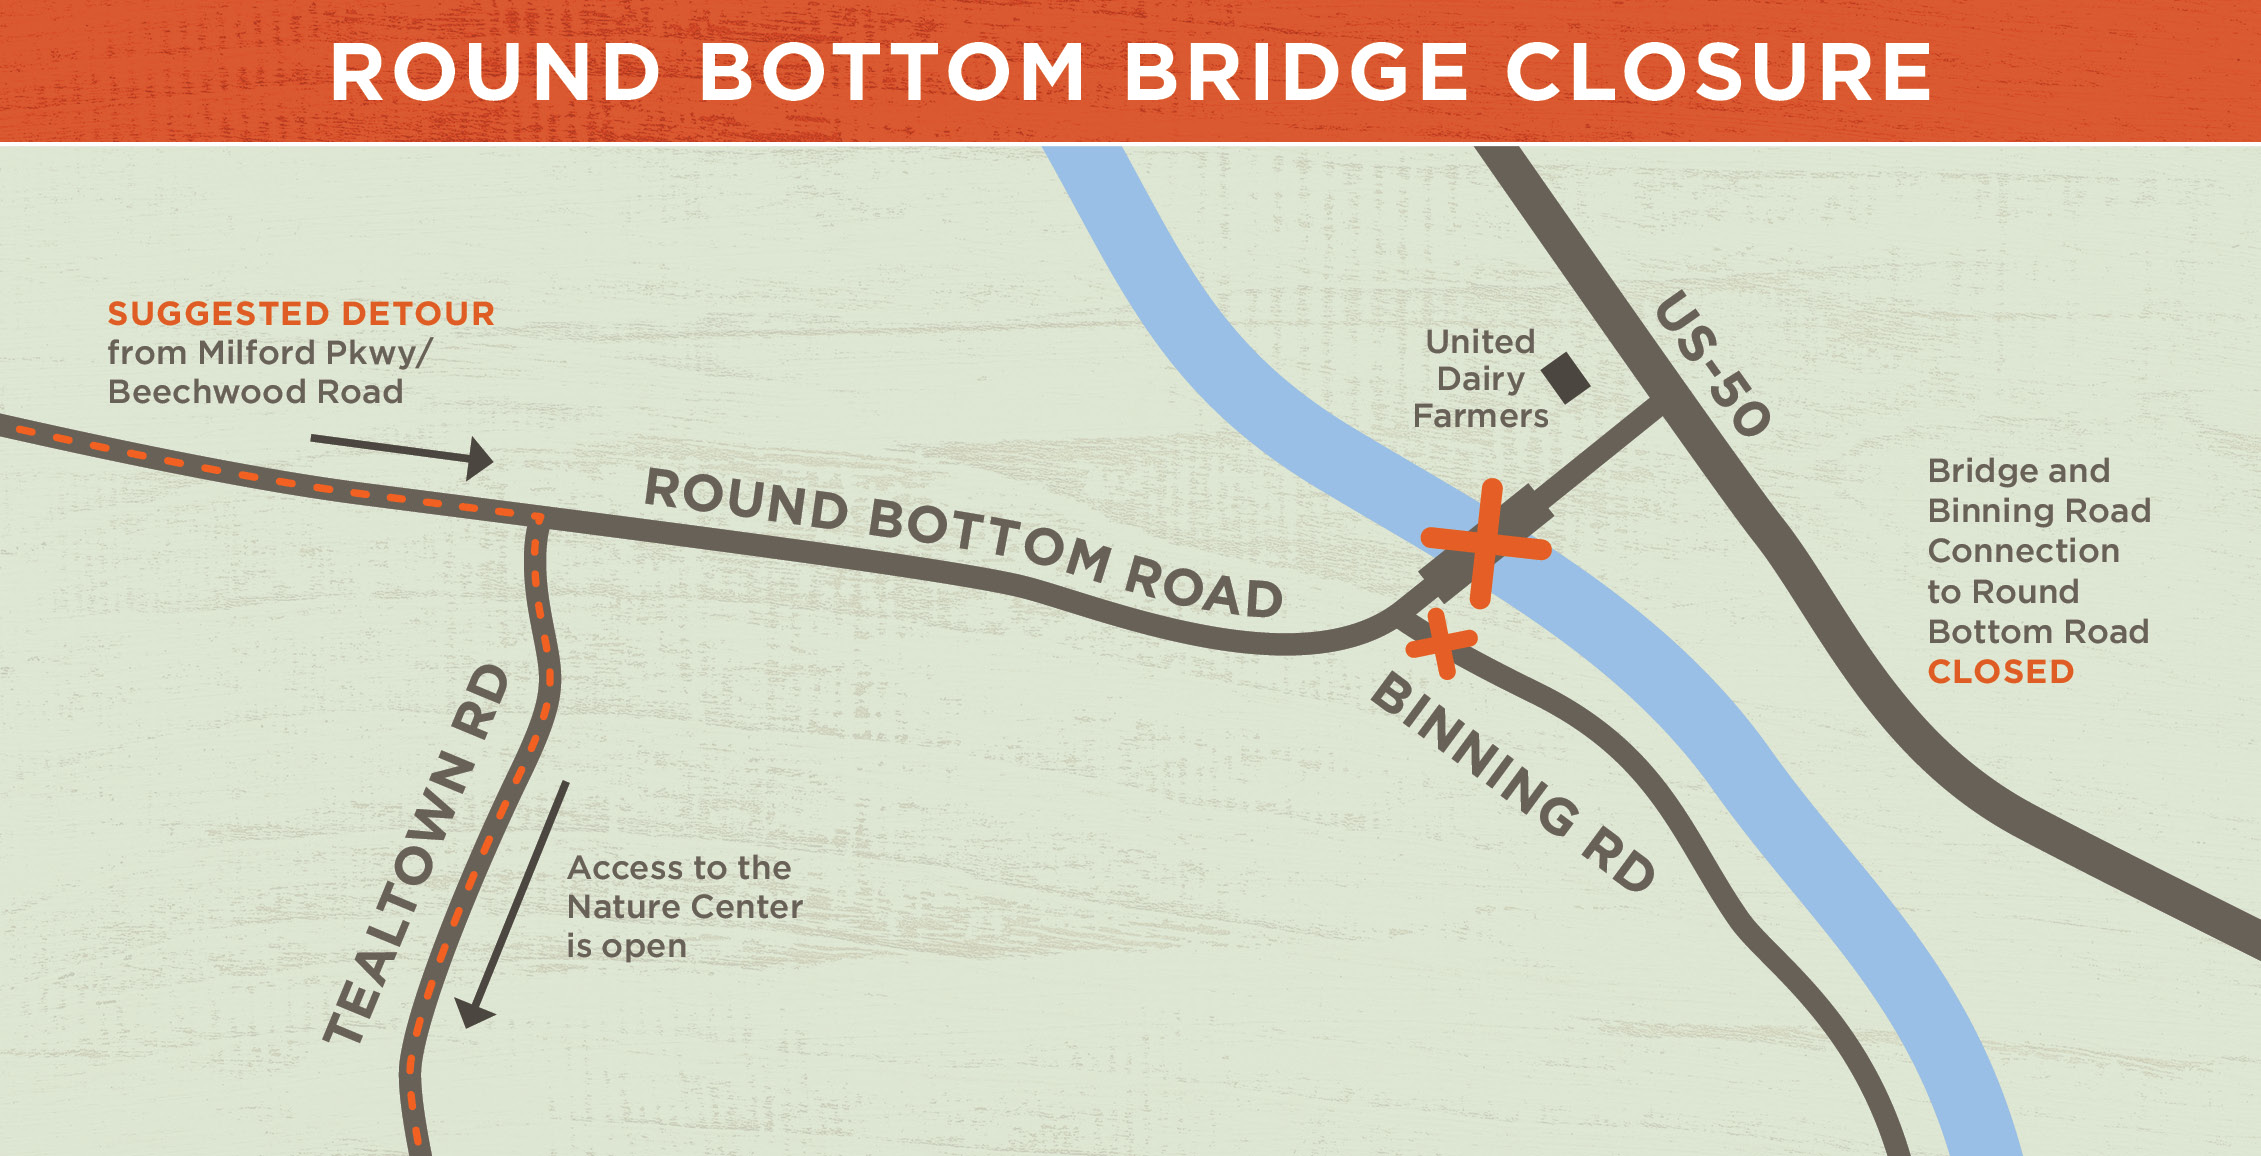 Image of a map of the Round Bottom Bridge closure